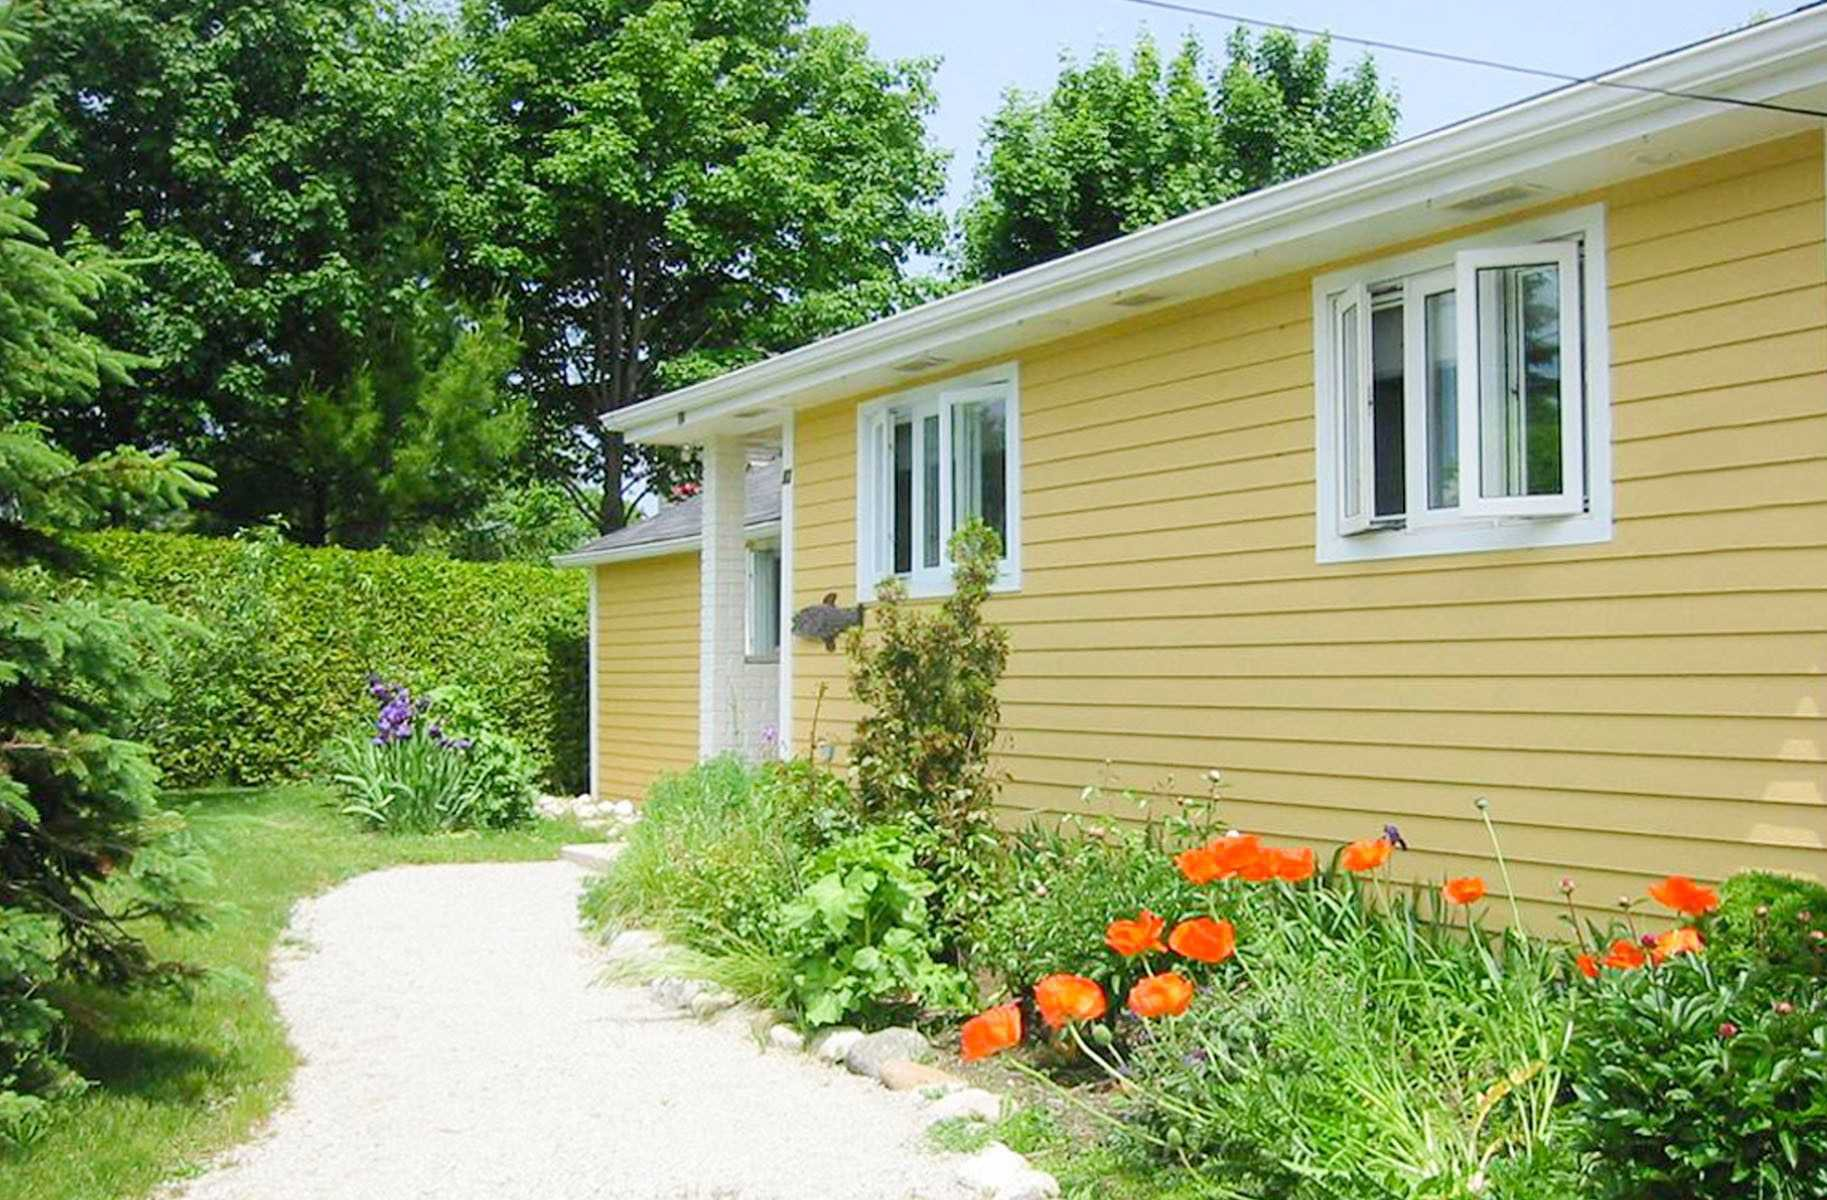 Photo 4: Photos: 62 Cottage Avenue in Blue Mountains: Thornbury House (Bungalow) for lease : MLS®# X4754668